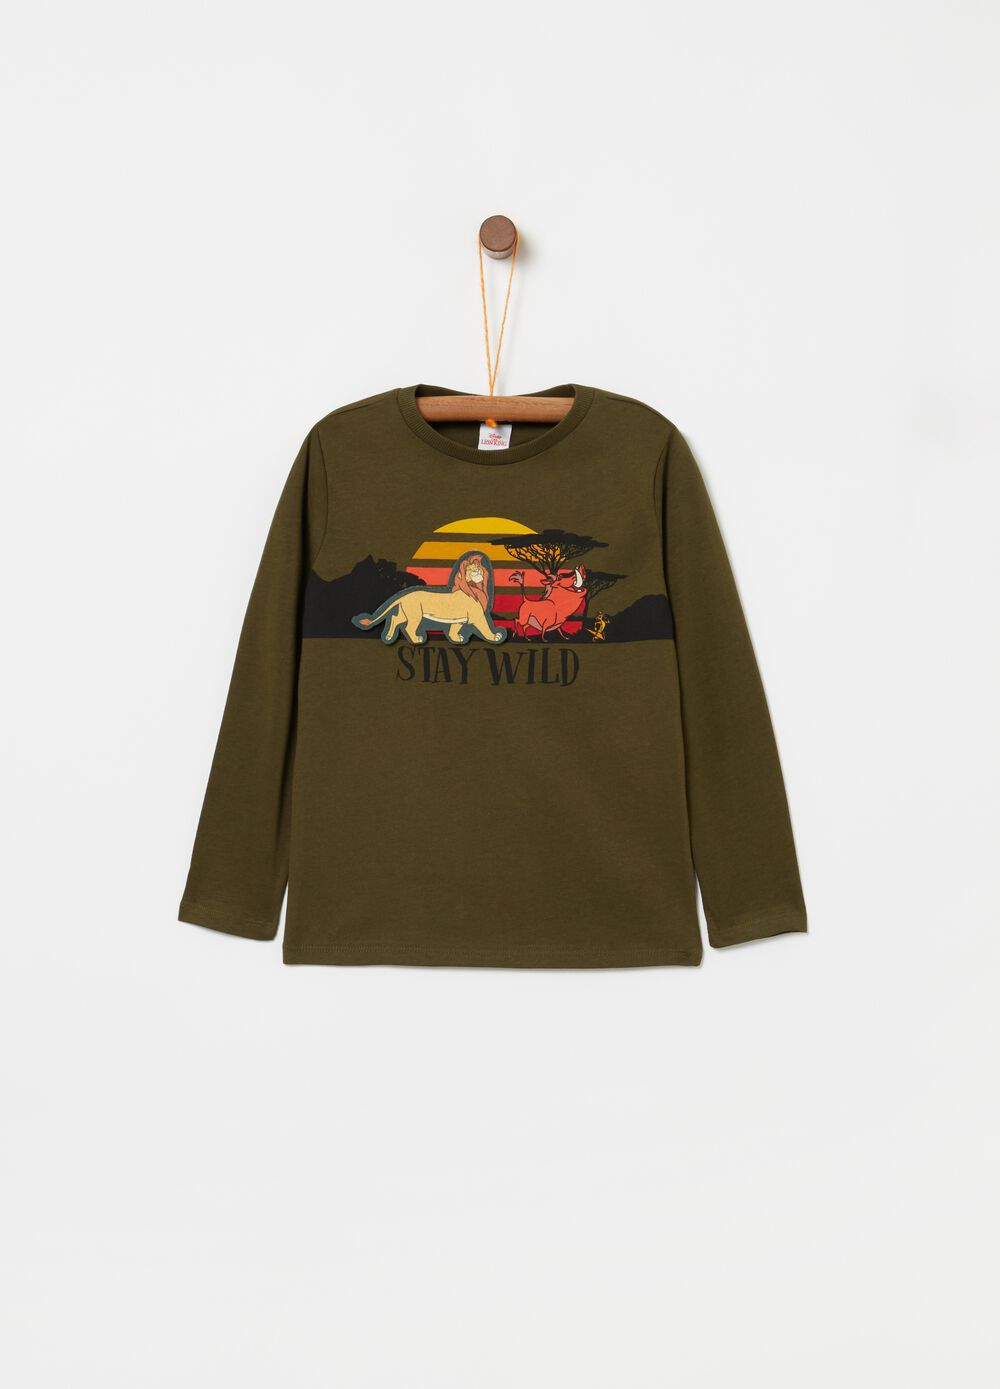 T-shirt with Lion King print and long sleeves